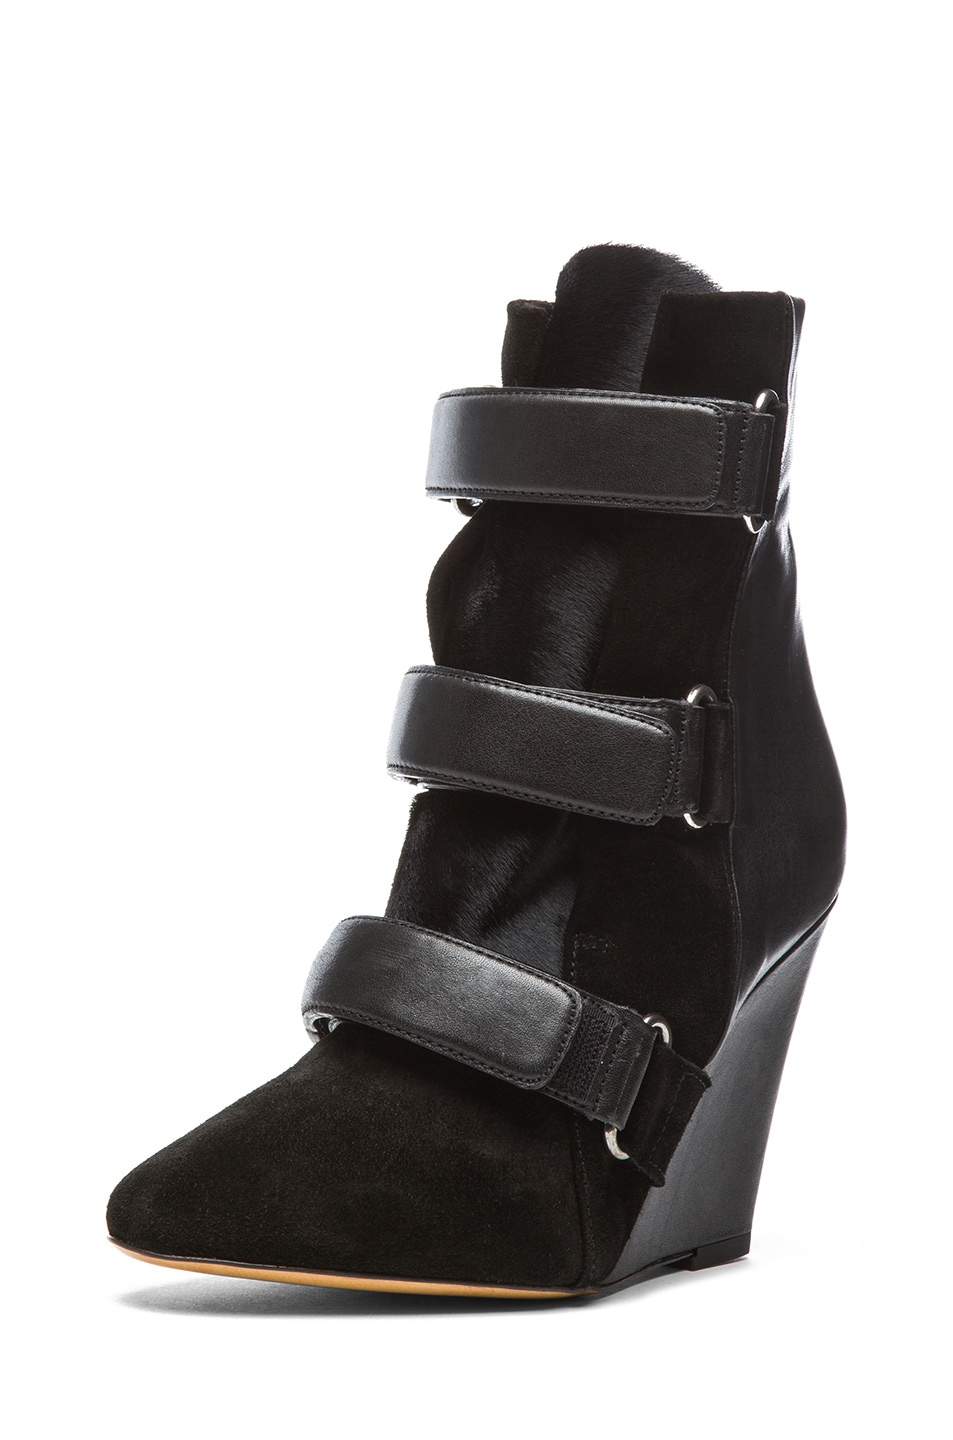 Image 2 of Isabel Marant Scarlet Calfskin Suede Leather Wedge Booties in Black